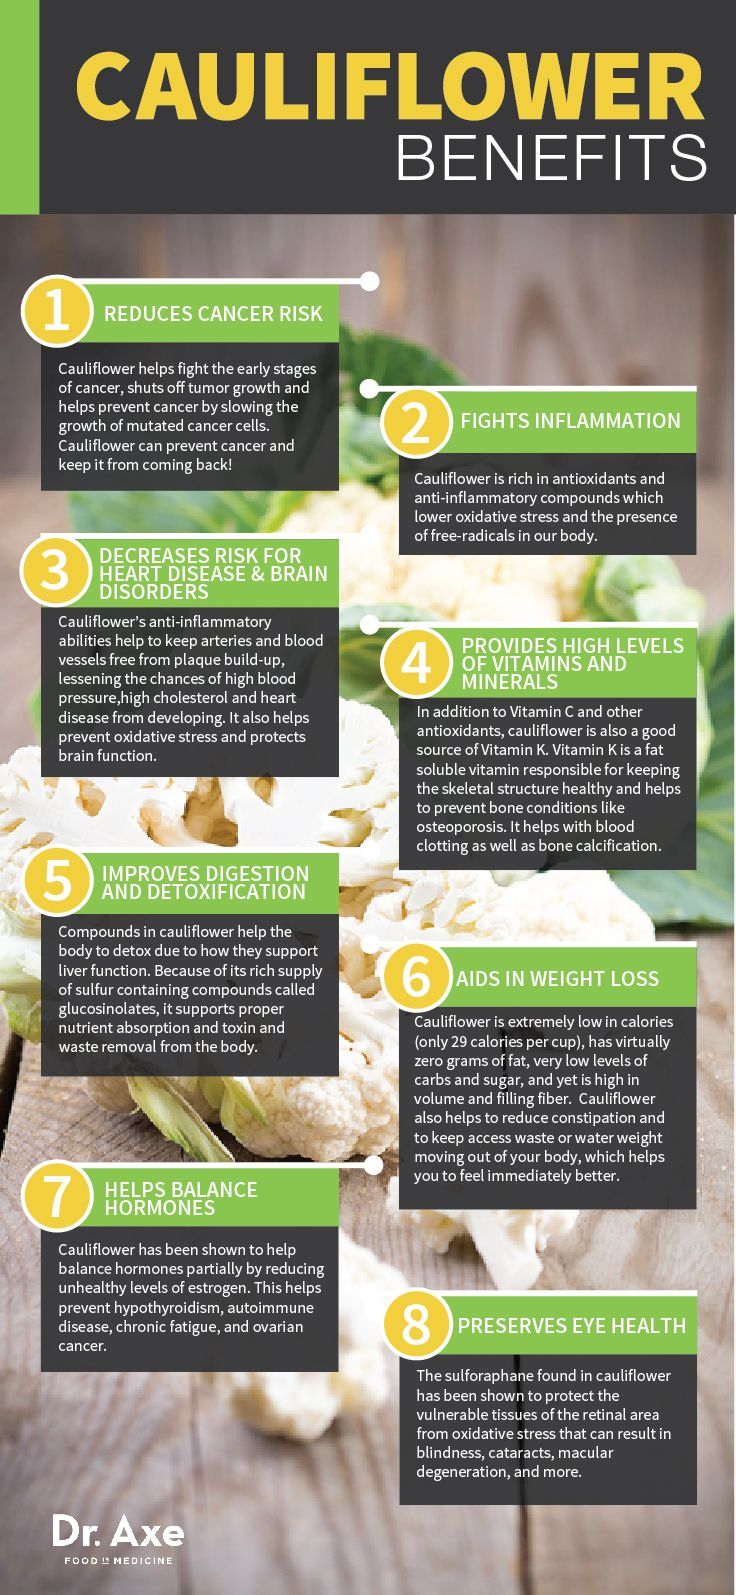 Cauliflower: Benefits, Nutrition & Recipes http://www.draxe.com #health…